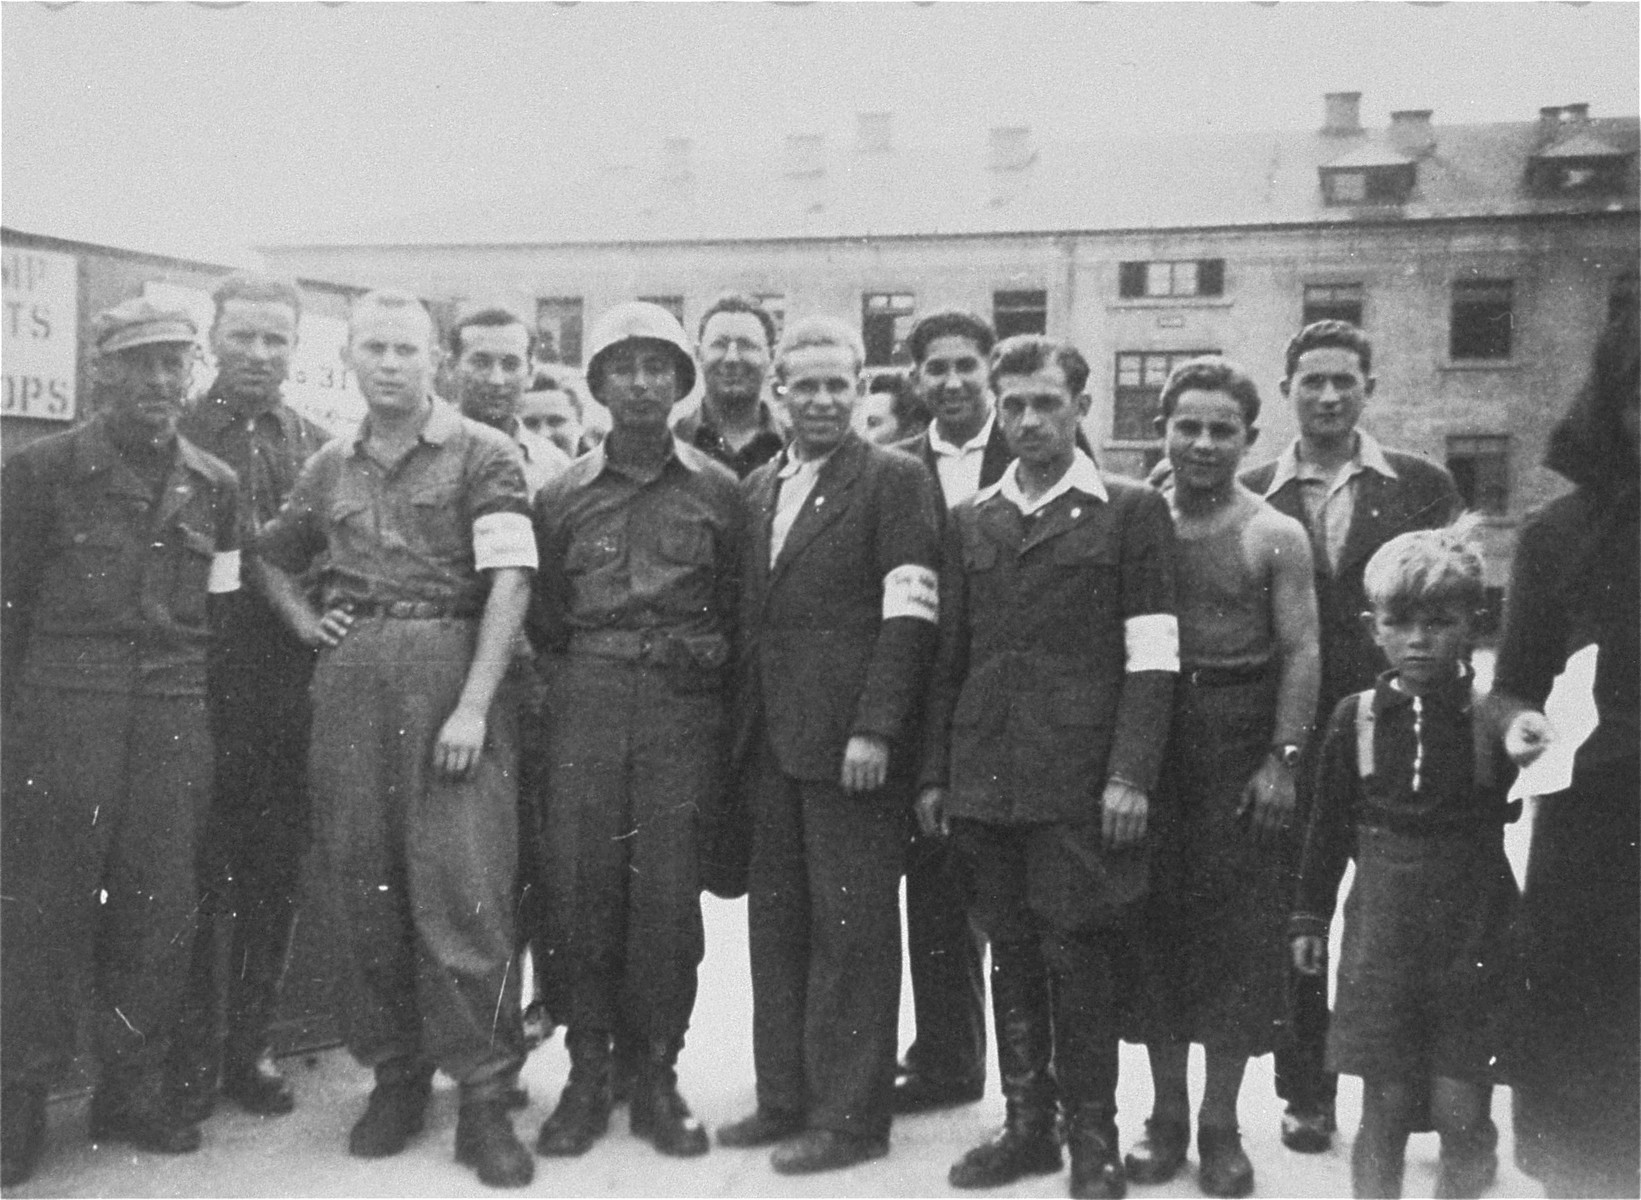 Group portrait of Jewish DPs at the New Palestine displaced persons camp.